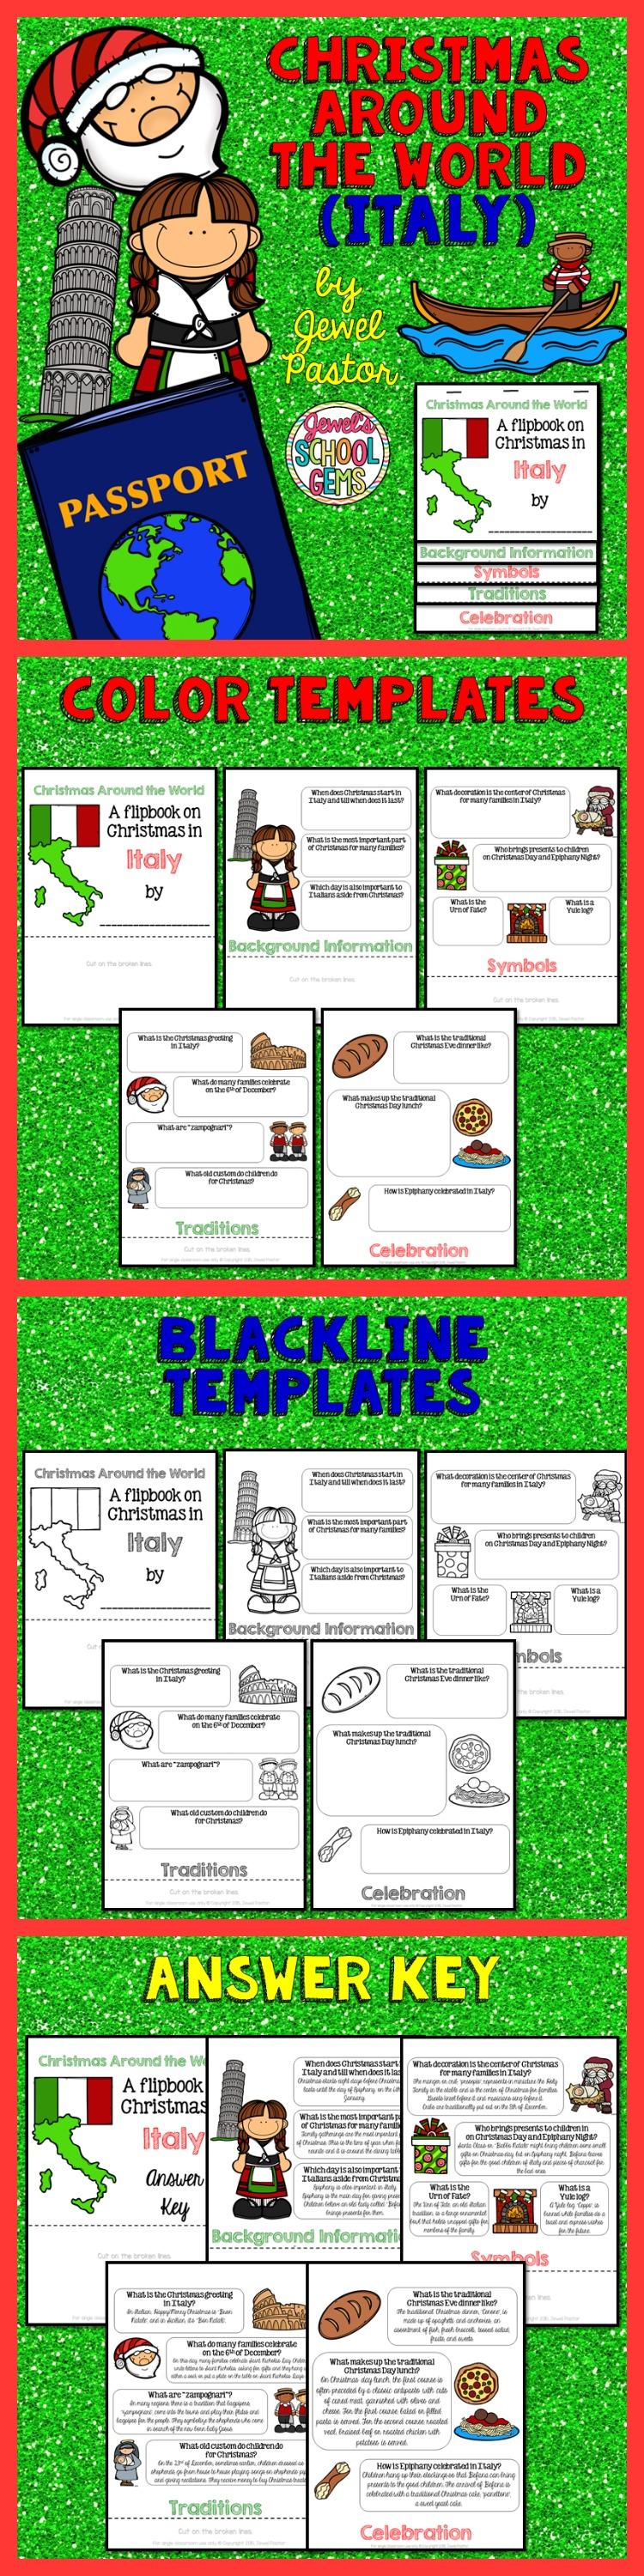 """CHRISTMAS AROUND THE WORLD   """"Christmas Around the World (Italy)"""" is the perfect Christmas Around the World activity this Christmas.  This resource contains: *5 pages of color templates *5 pages of black and white templates *5 pages with answers to the questions (Answer Key)  Children will learn about Christmas traditions and celebrations in Italy in a fun and interactive way with this Christmas Around the World flipbook research project!  Please see Preview to see the color templates"""